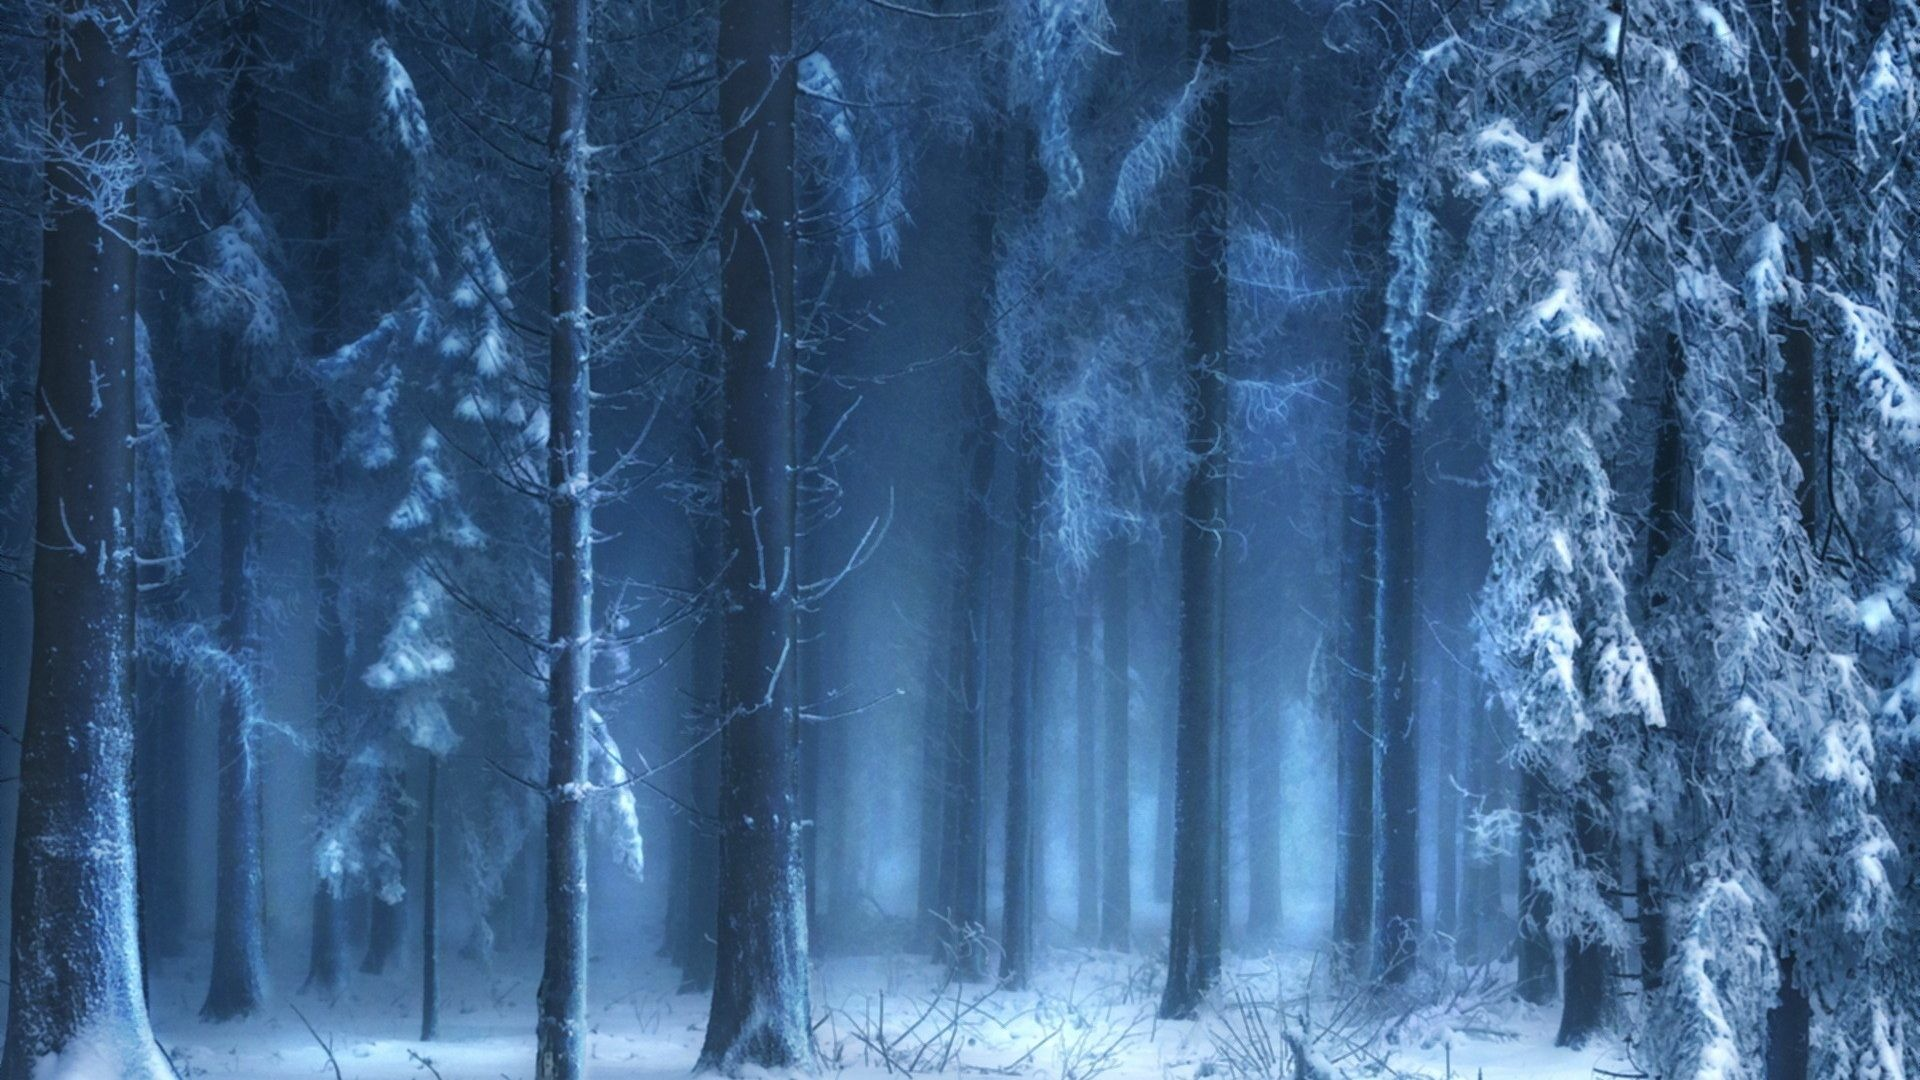 1920x1080 Landscapes Forest Woods Snow Trees Winter Nature Wallpapers For Desktop Hd  Free Download